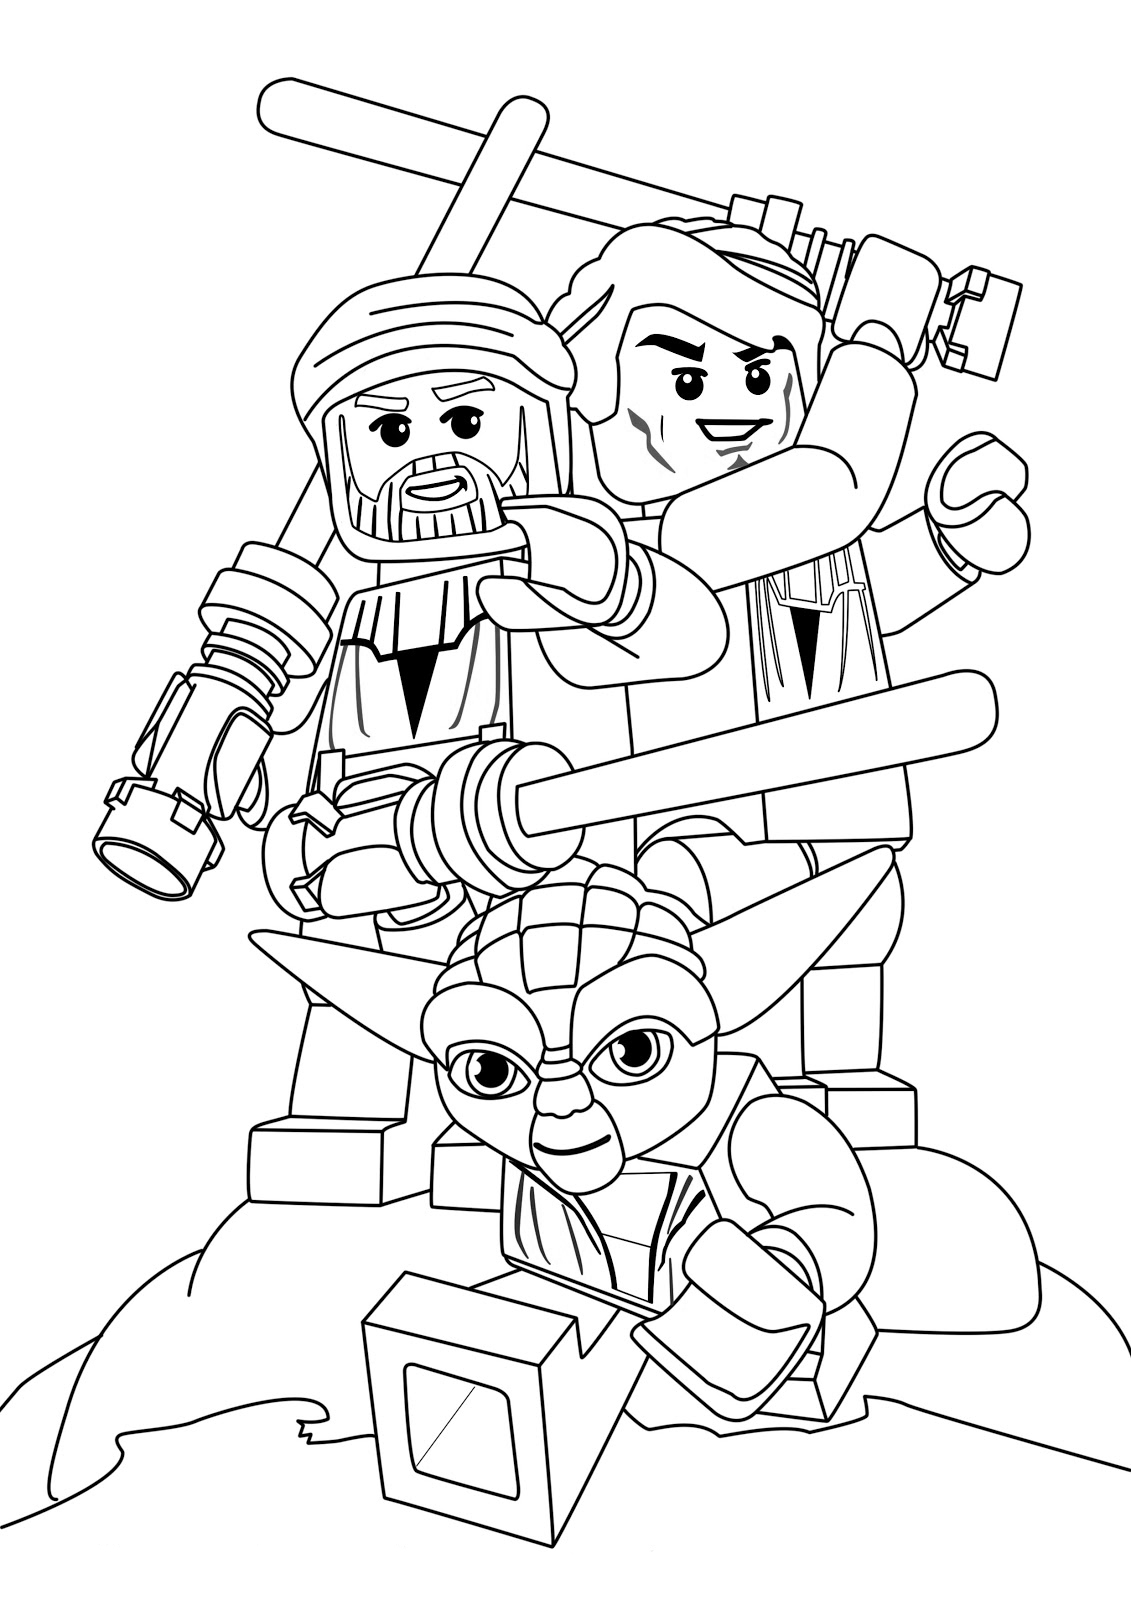 lego star wars coloring pages lego coloring pages with characters chima ninjago city star coloring pages lego wars